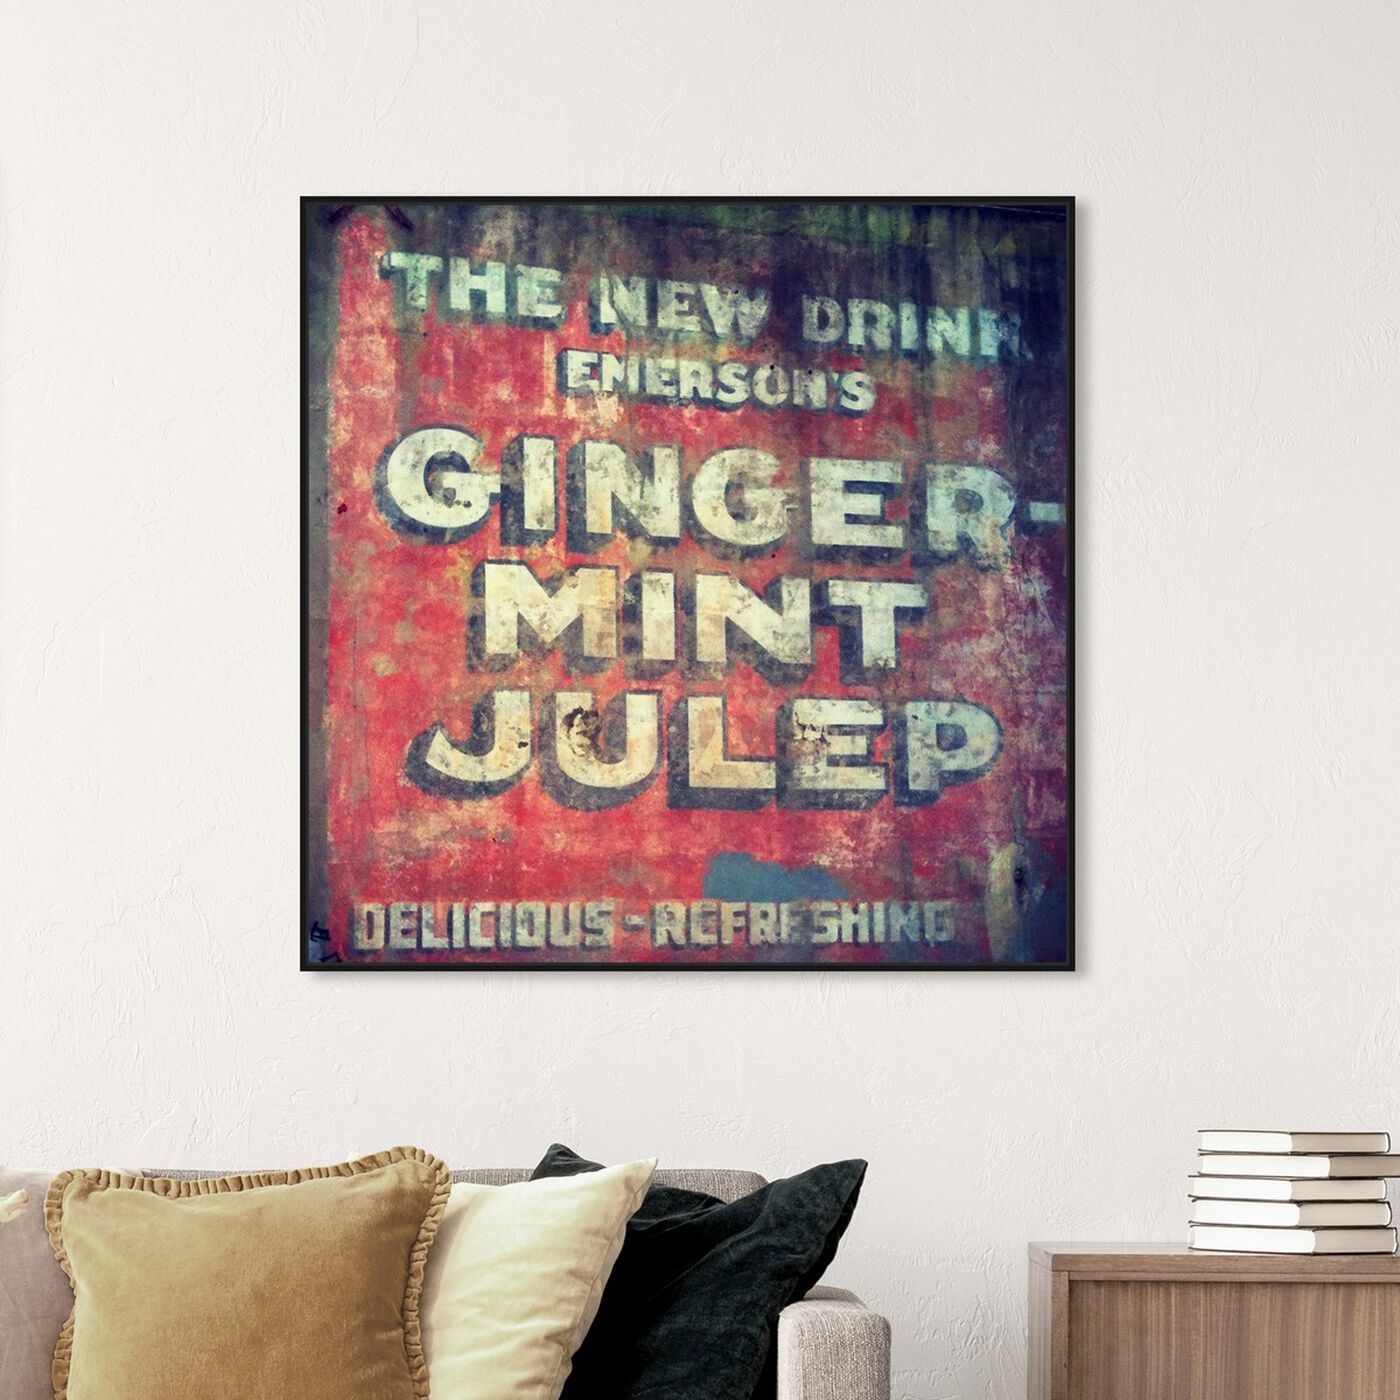 Hanging view of Ginger Mint Julep featuring advertising and promotional brands art.